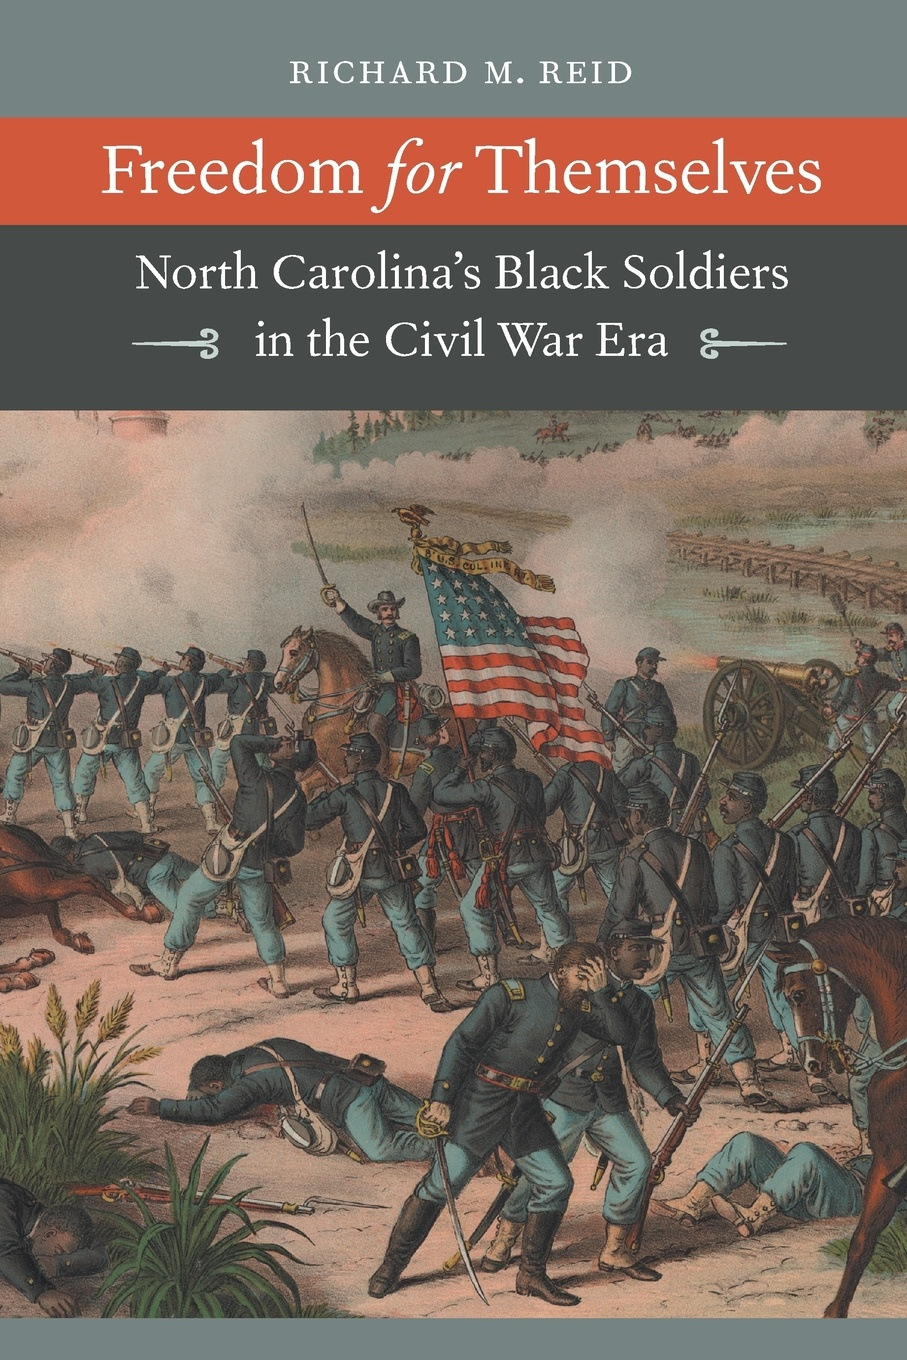 Richard M Reid Freedom for Themselves North Carolina's Black Soldiers in the Civil War Era